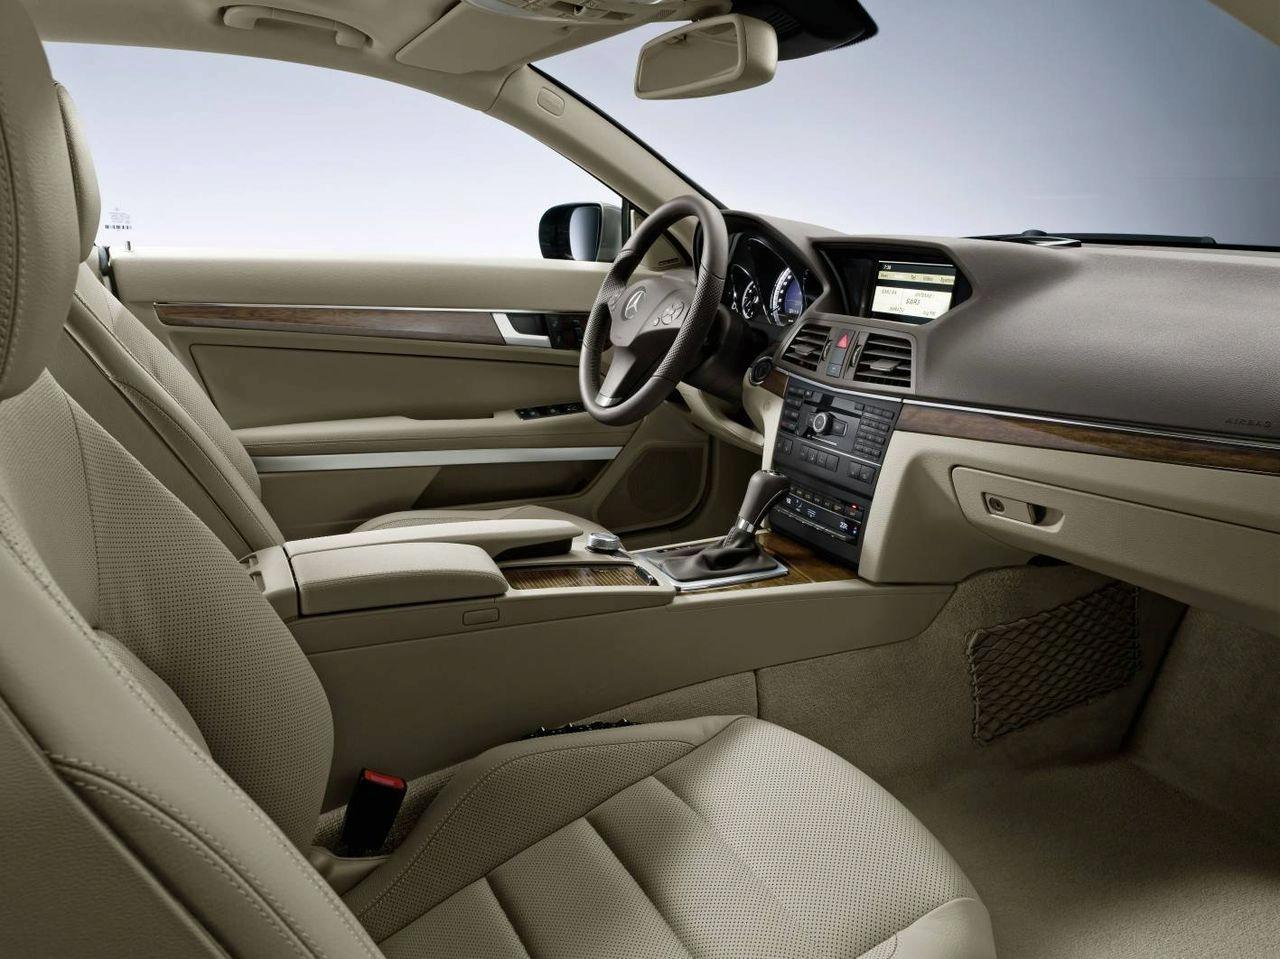 New 2010 mercedes benz e class coupe revealed ahead of geneva debut it s your auto world - Mercedes e coupe interior ...